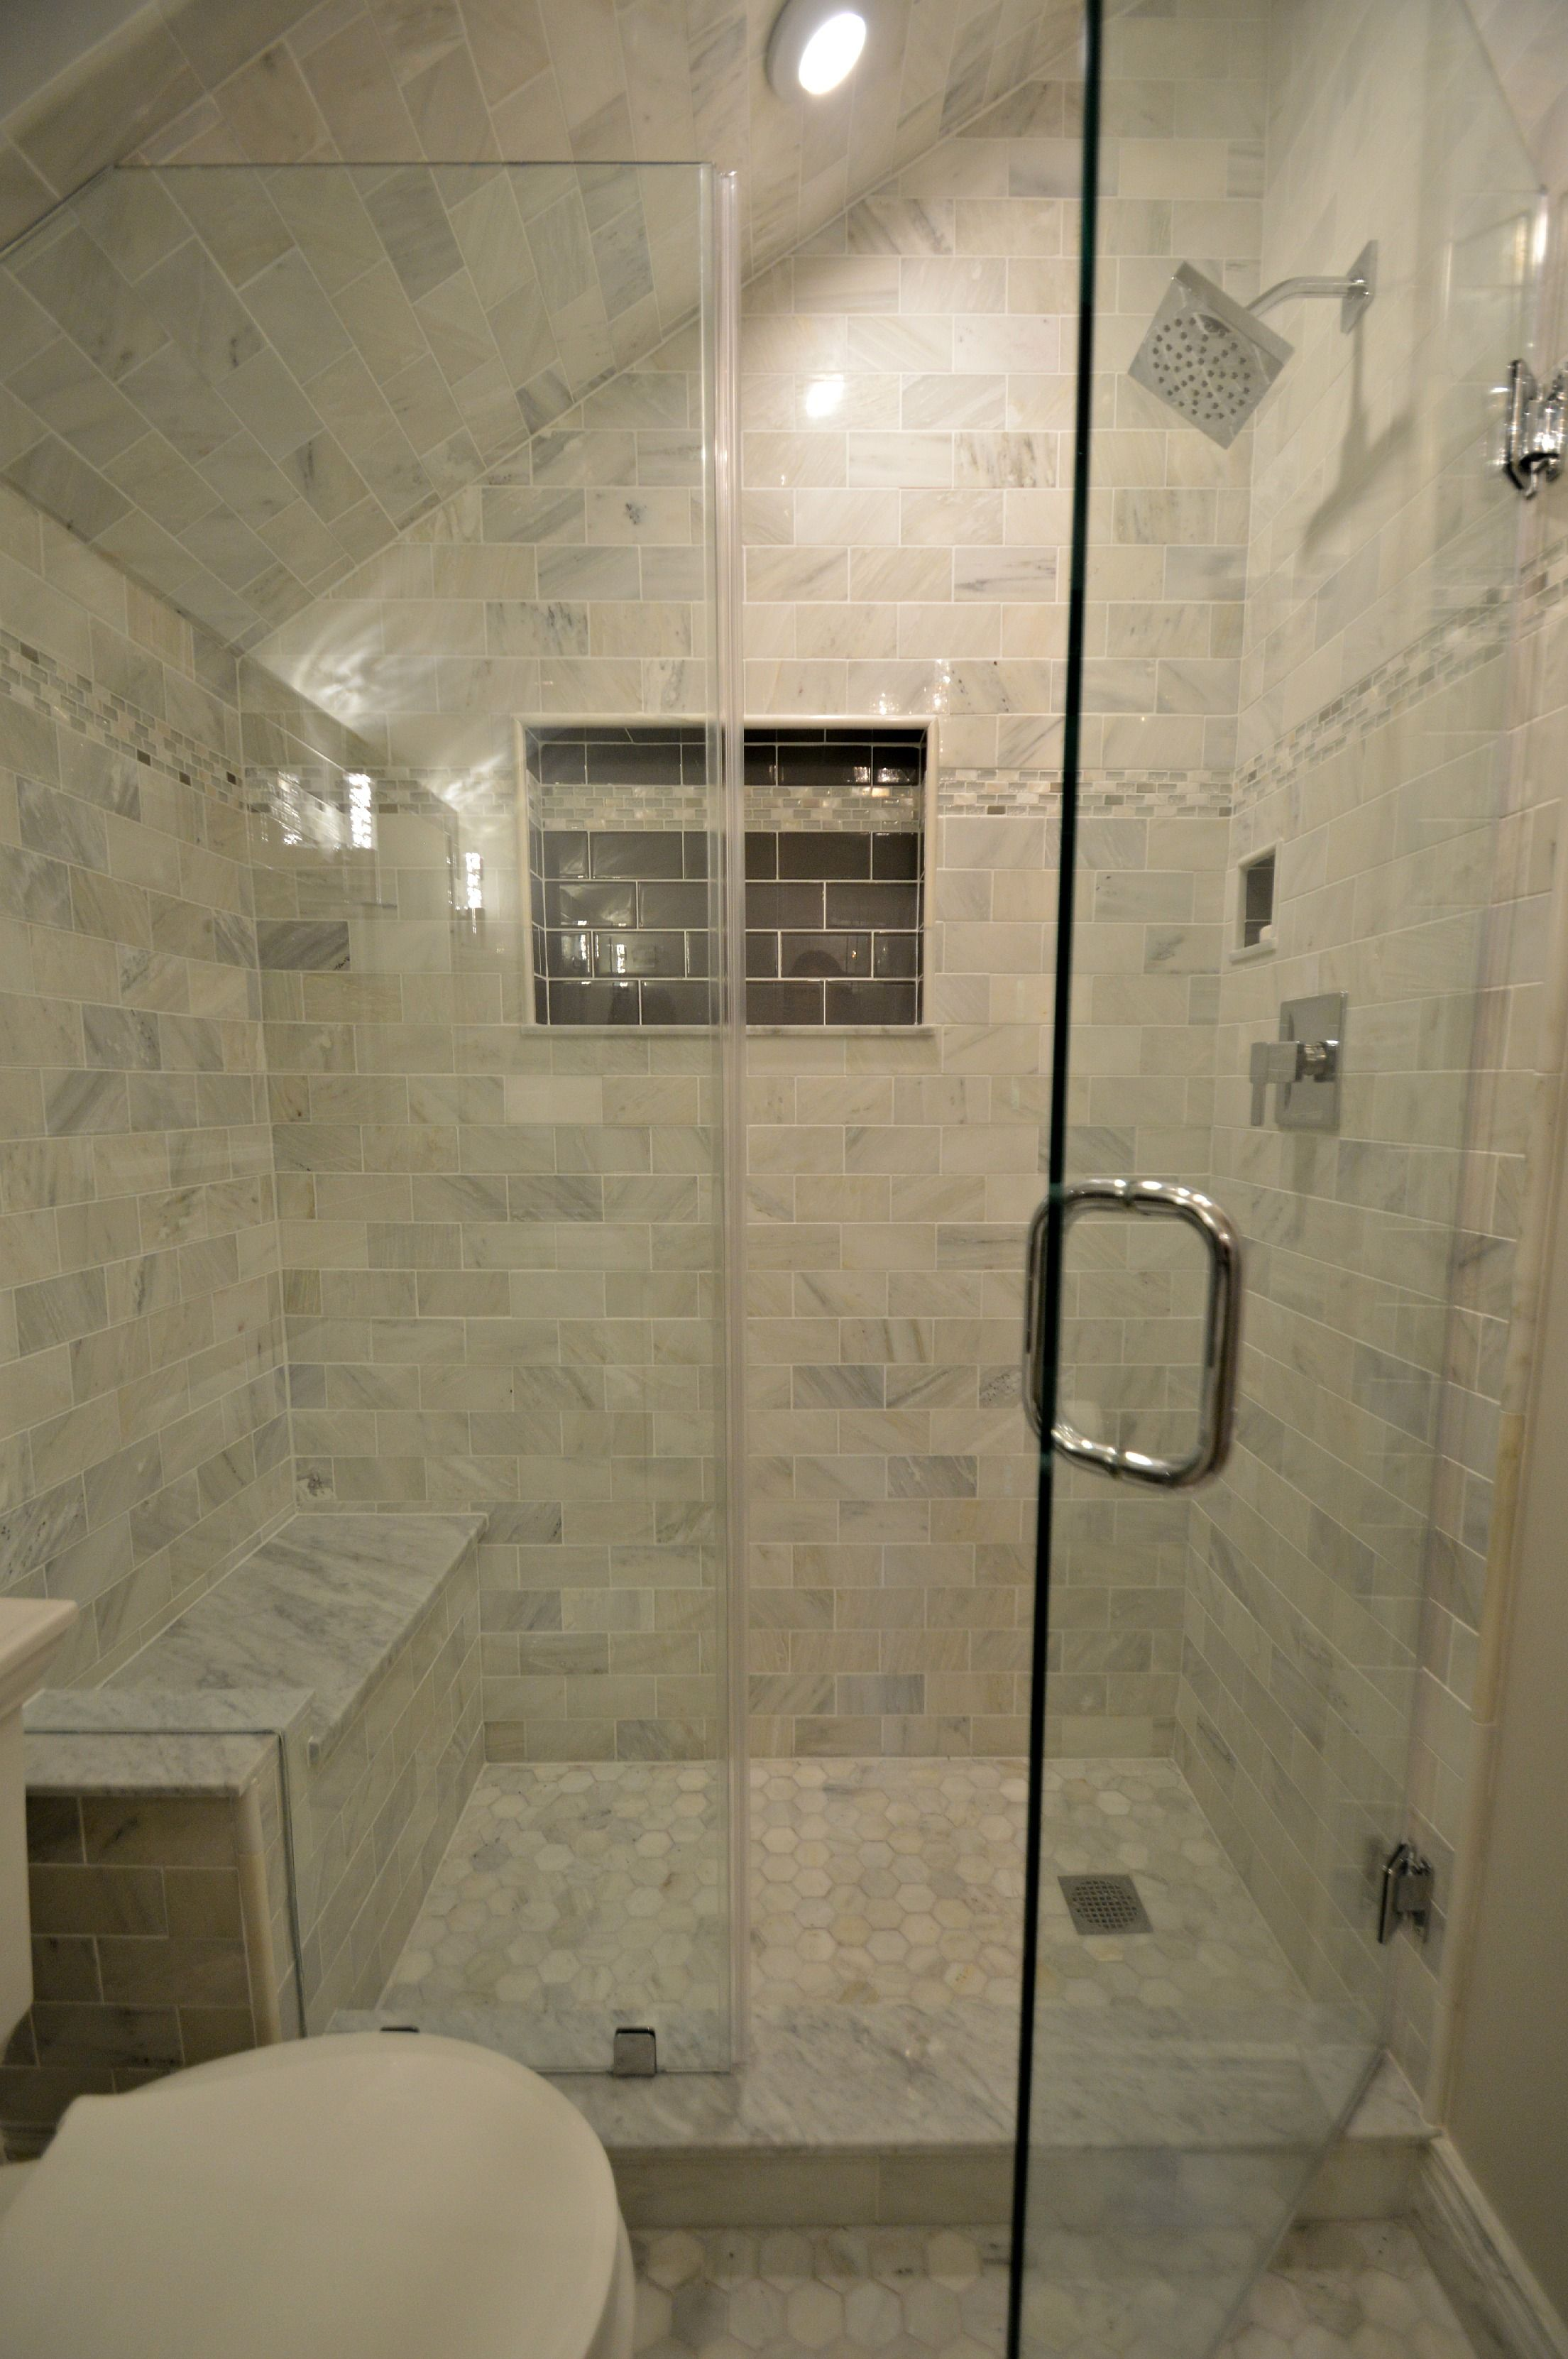 Add Tile On Your Shower Ceiling Here We Continued Carrara Marble Tile All The Way To The Sloped Ceiling For Th Shower Ceilings Carrara Marble Tile Marble Tile